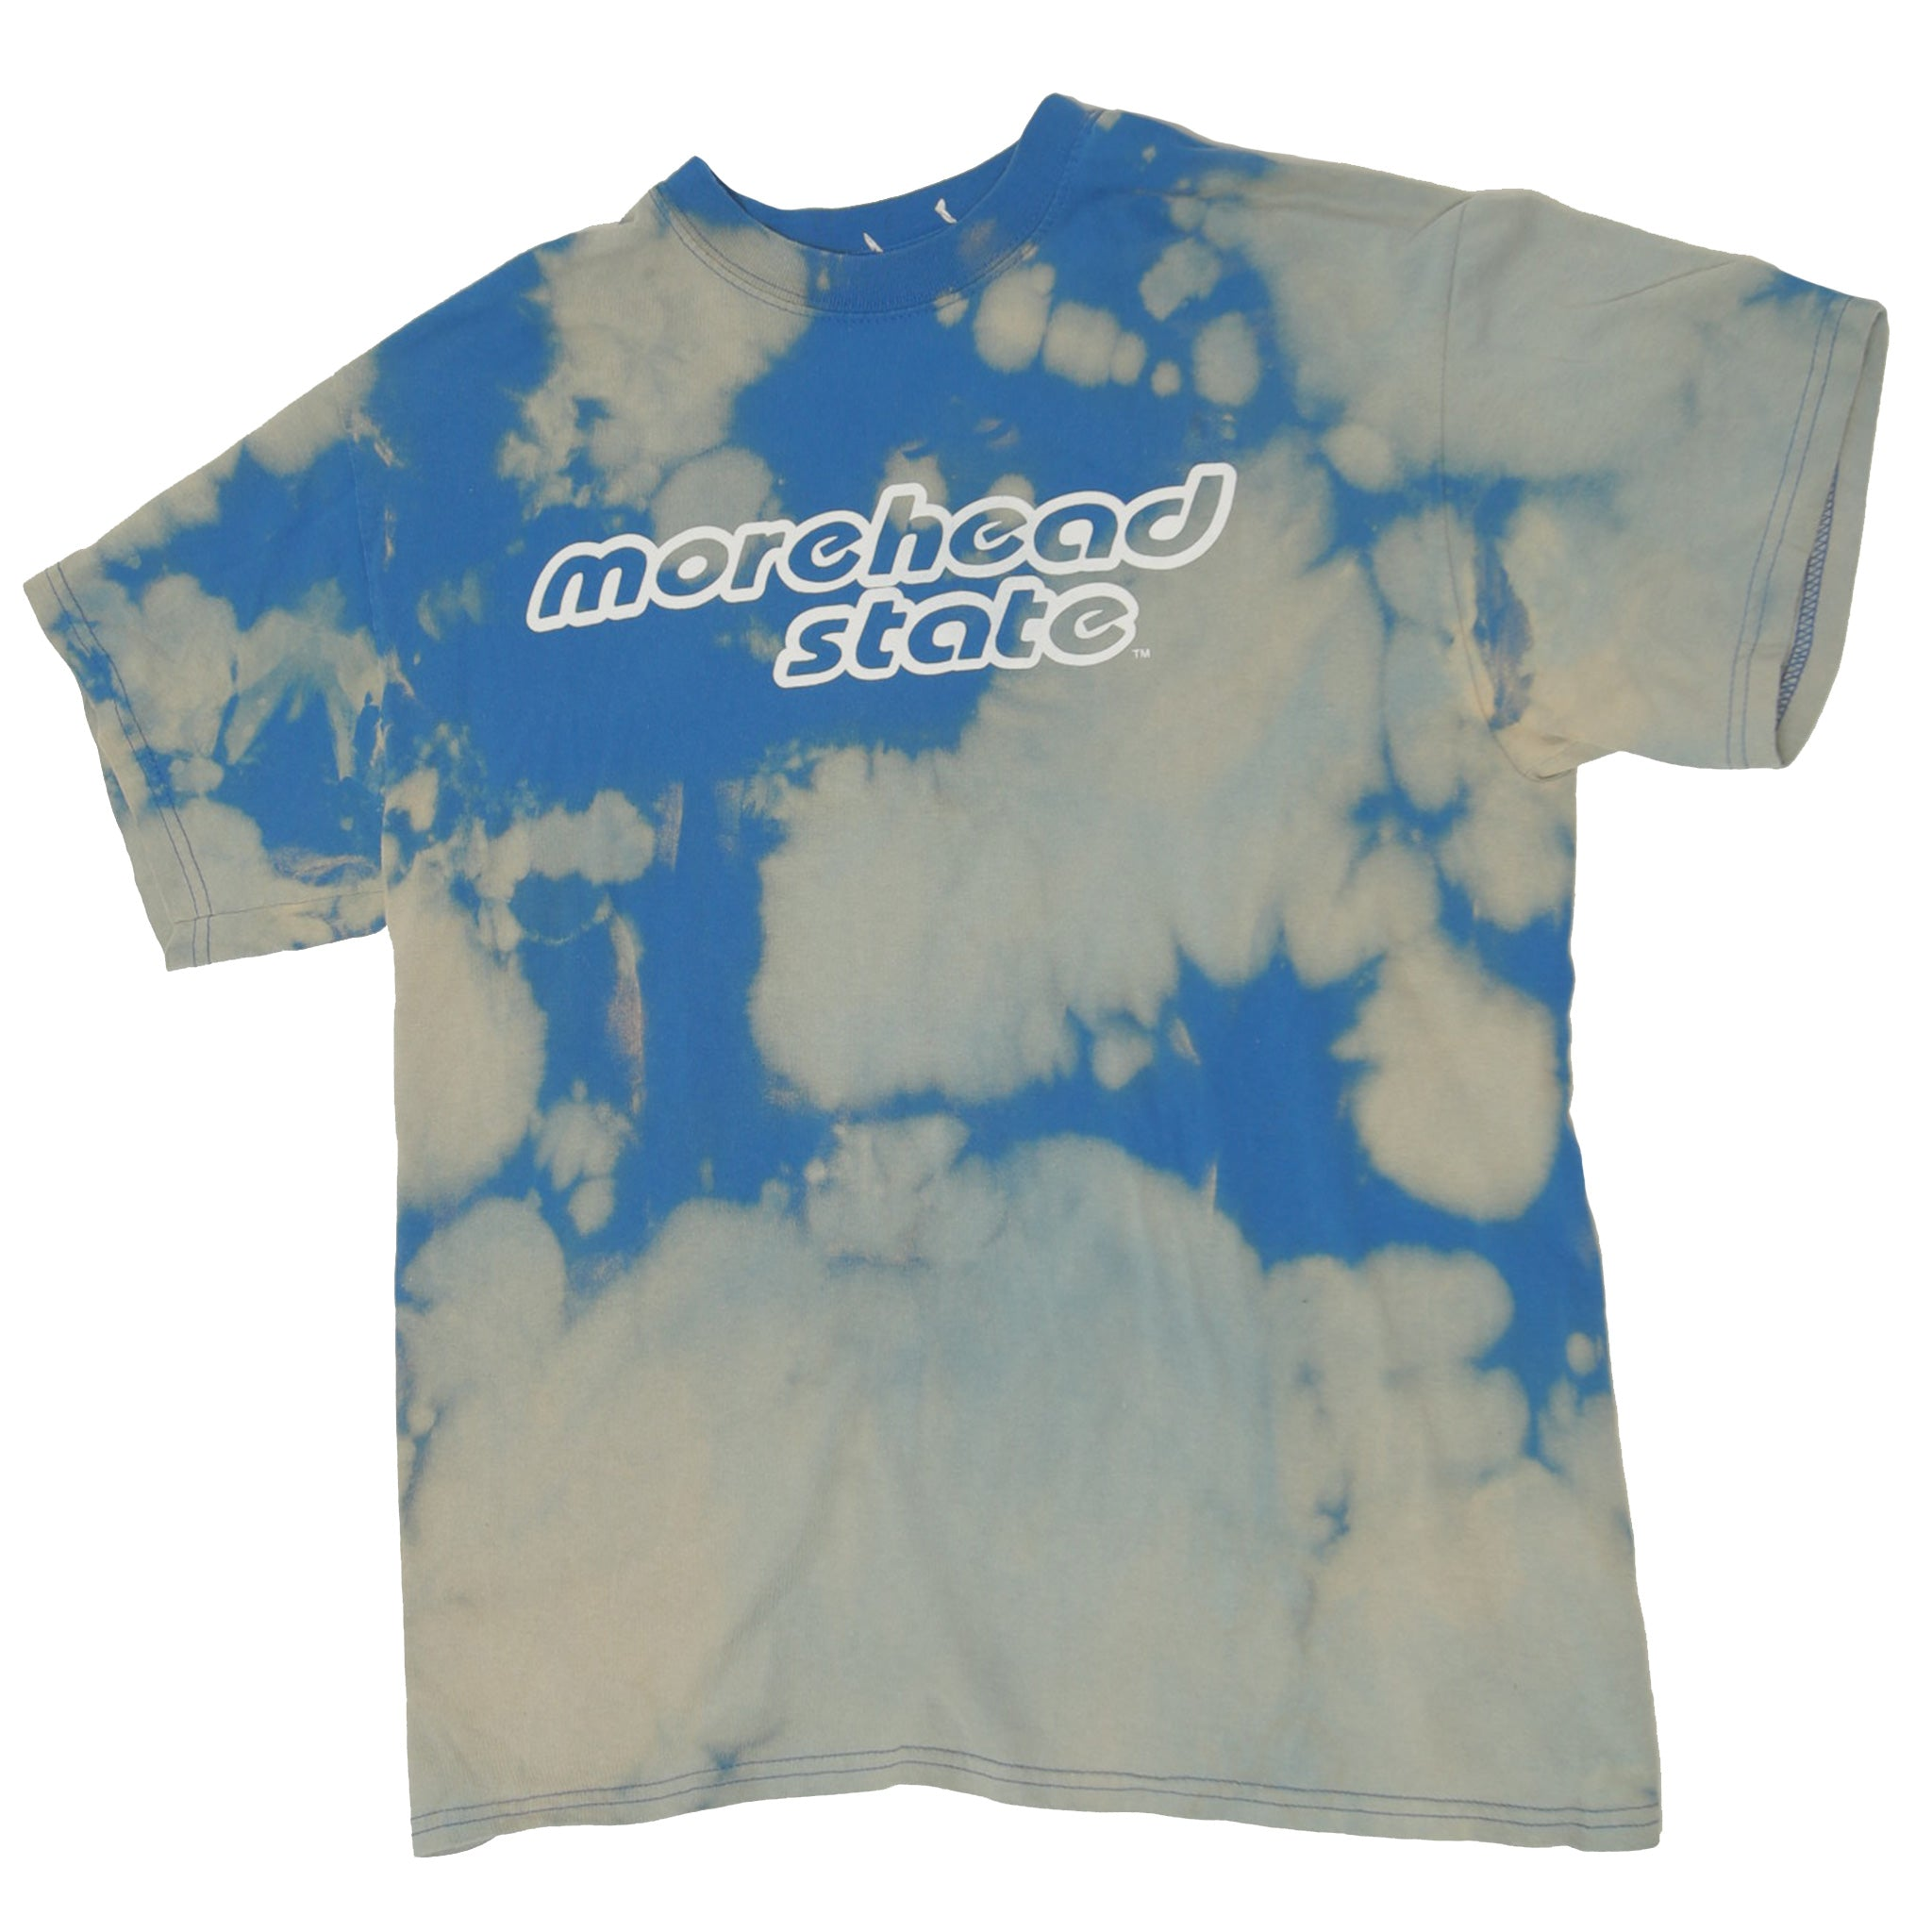 Morehead State T-Shirt